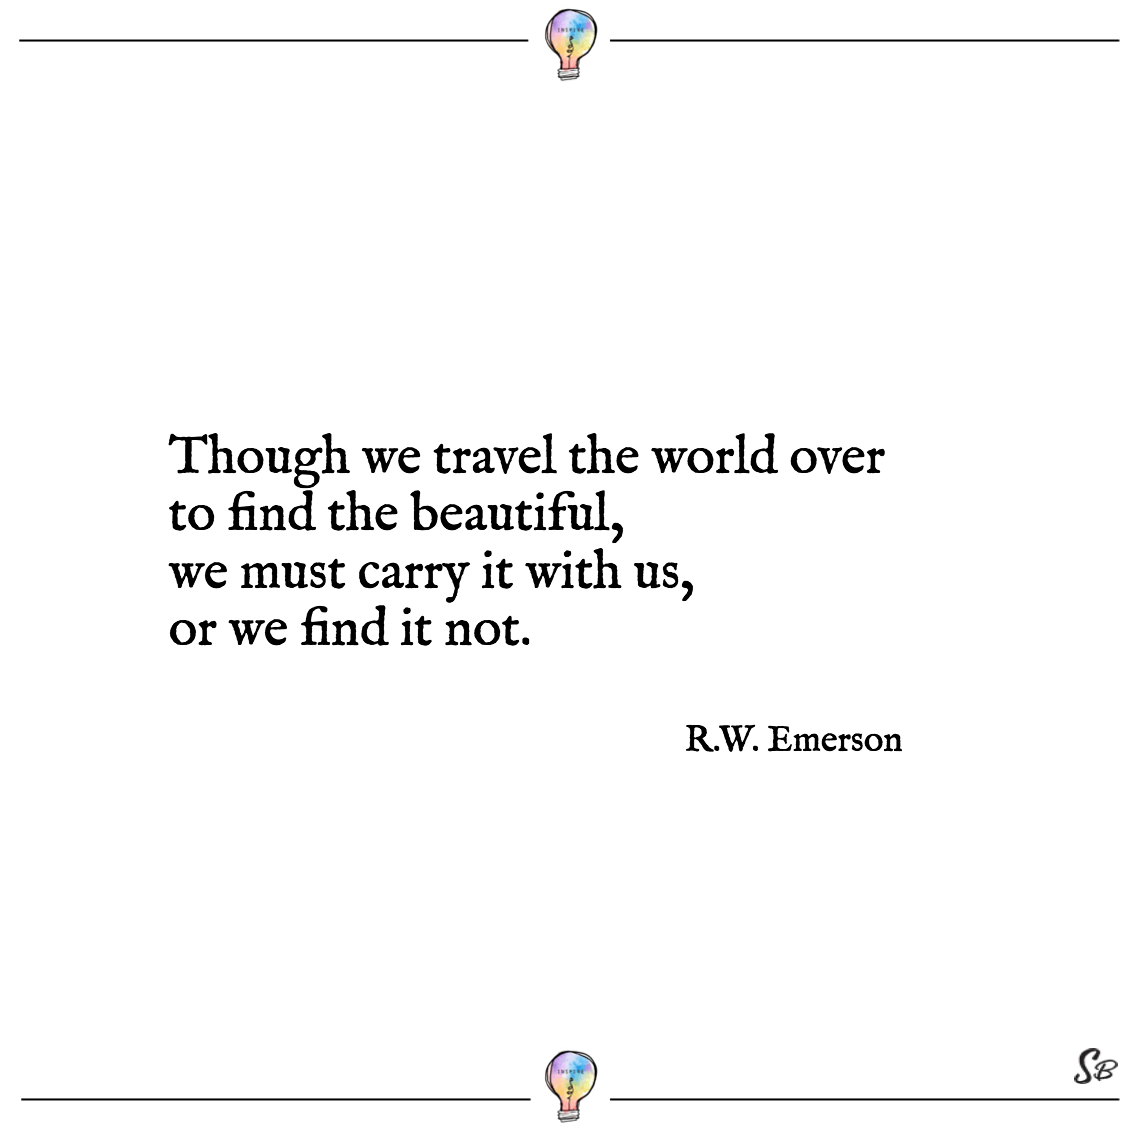 Though we travel the world over to find the beautiful, we must carry it with us, or we find it not. r.w. emerson